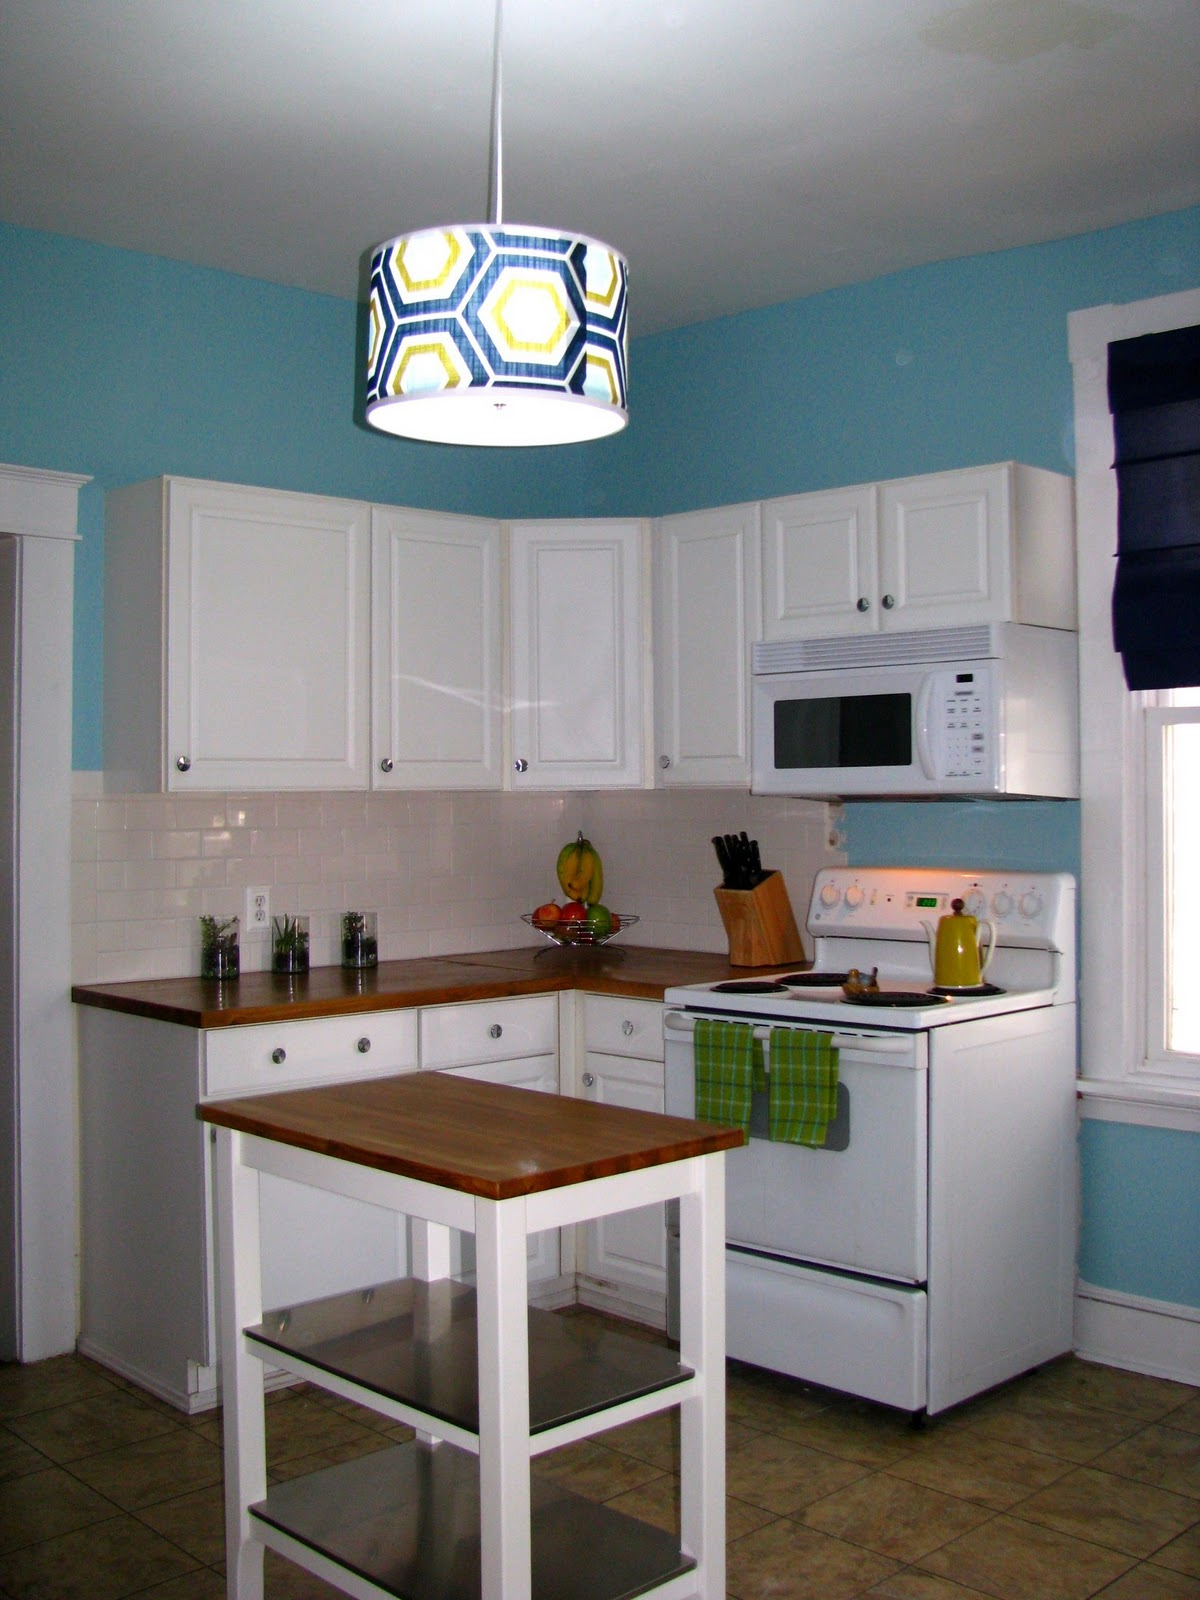 Remodelaholic kitchen remodel on the cheap for Inexpensive kitchen renovations